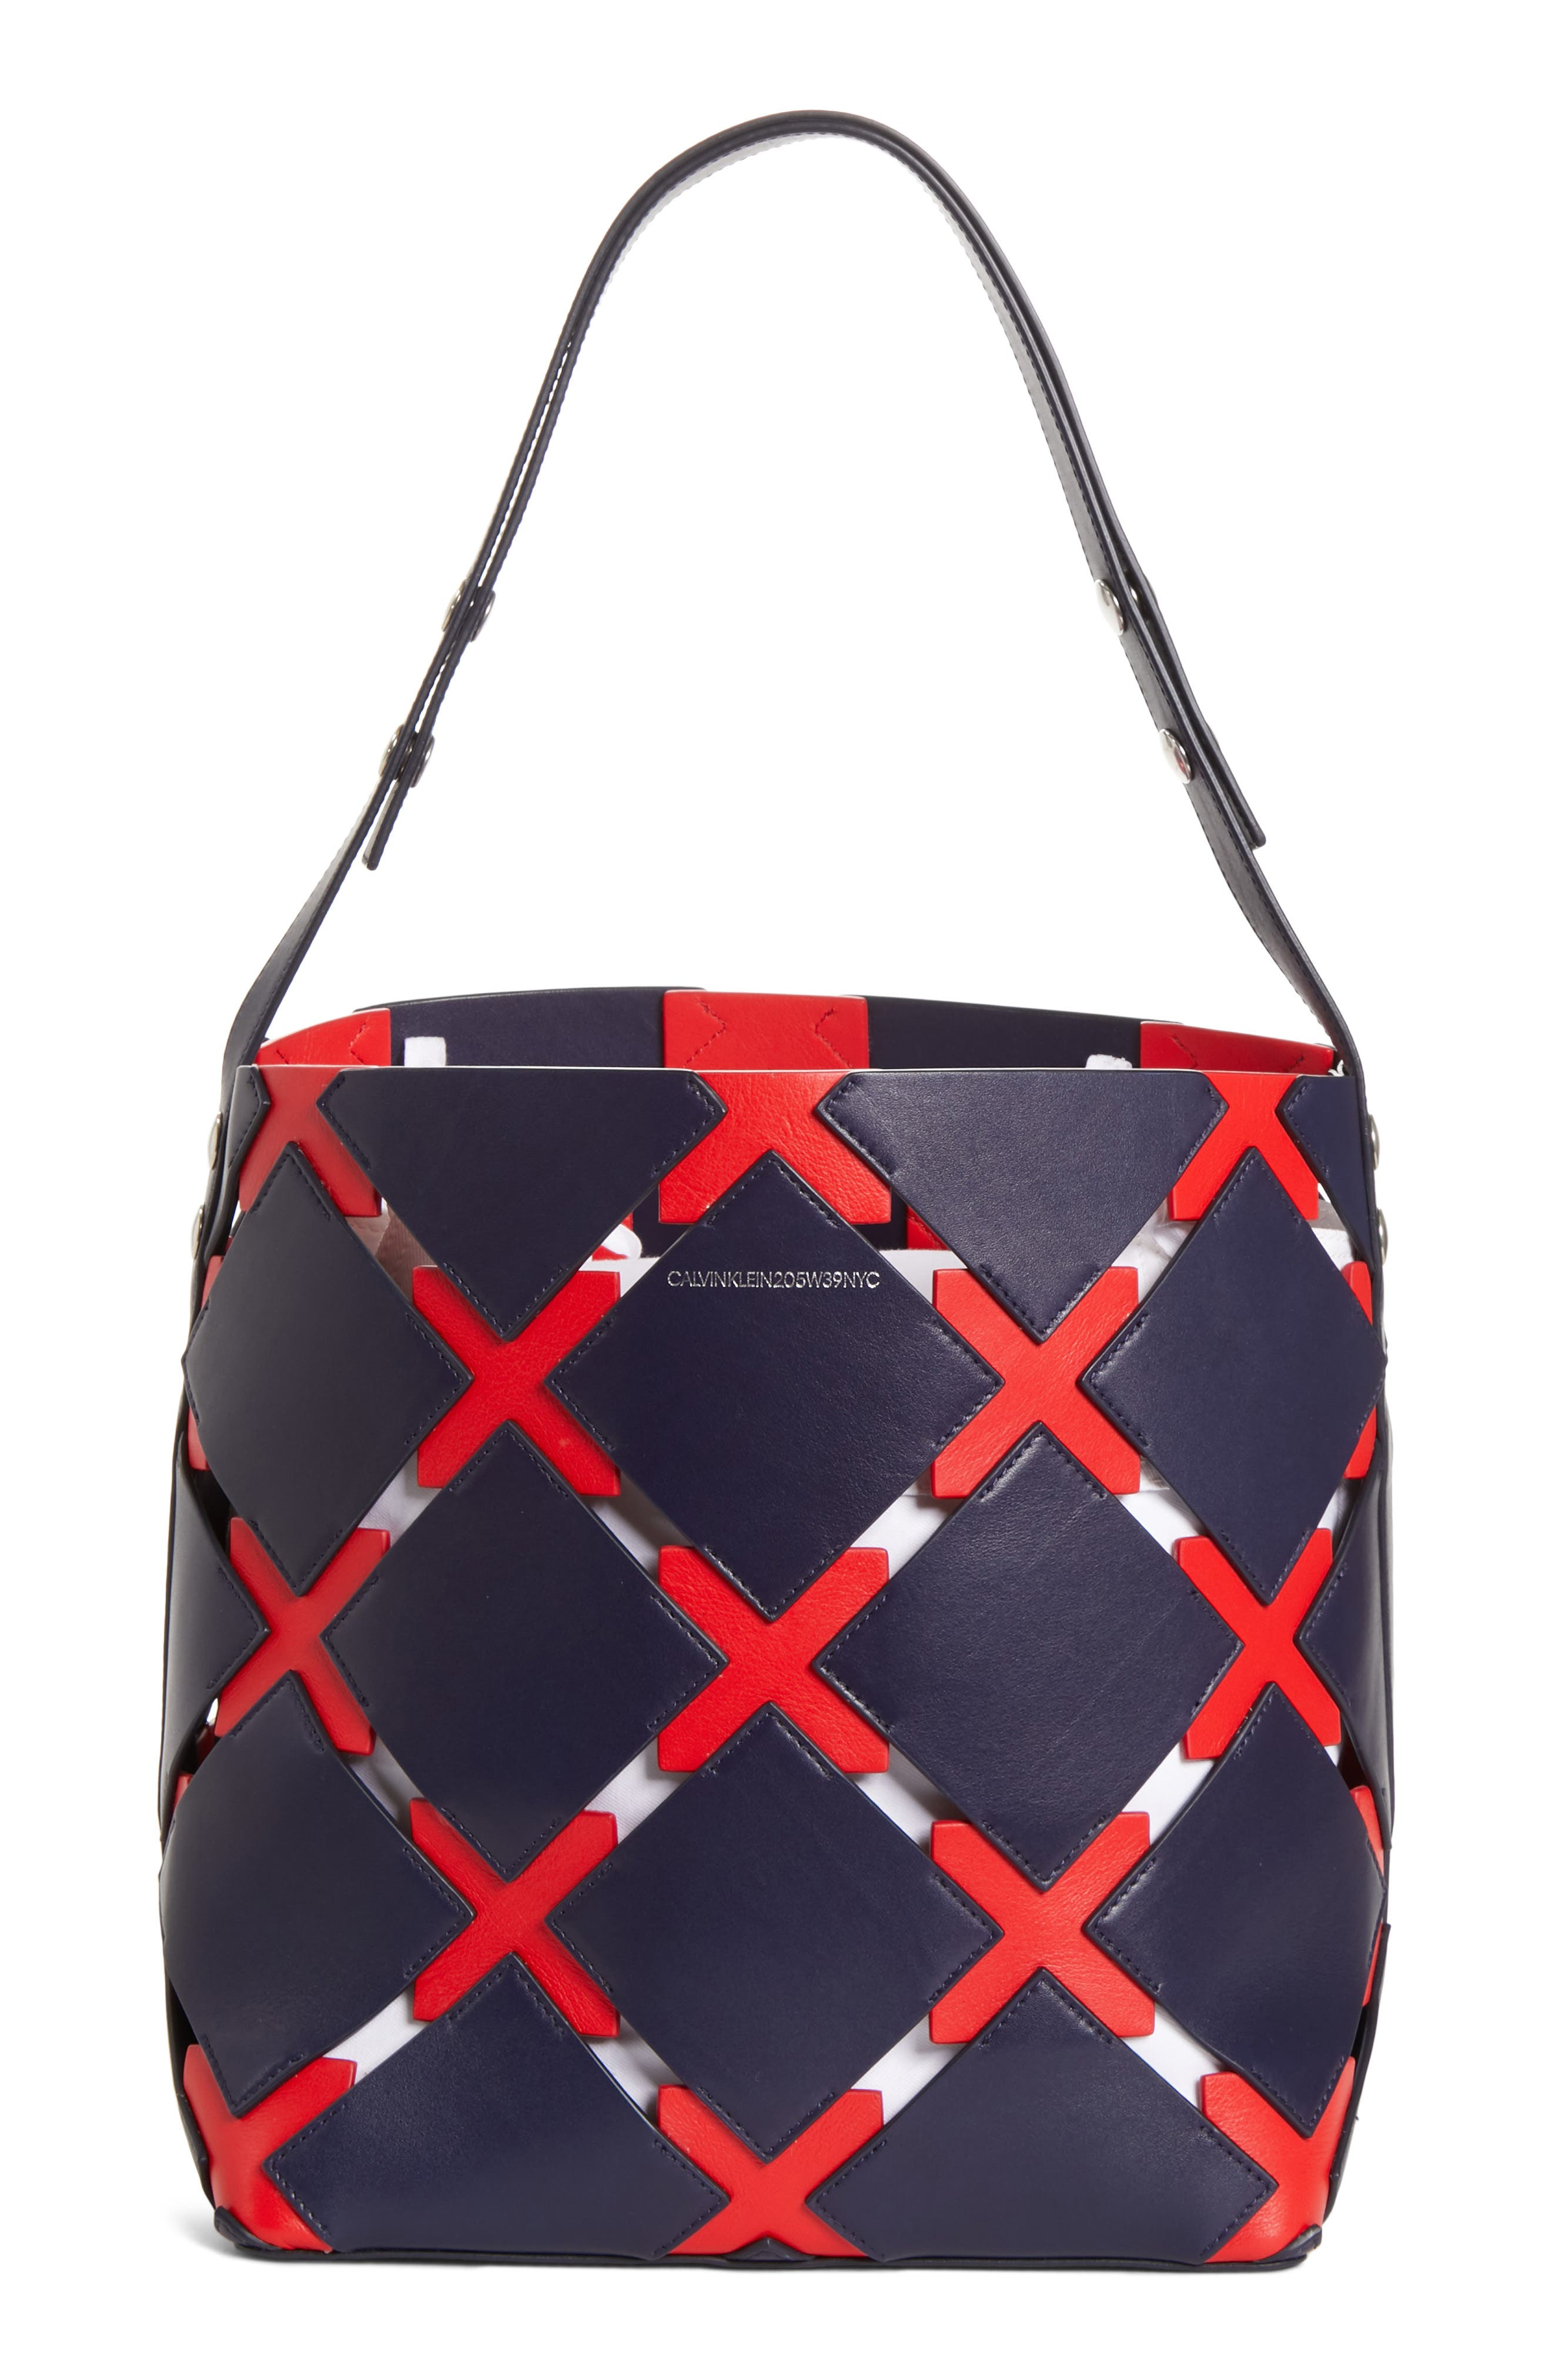 CALVIN KLEIN 205W39NYC, Patchwork Quilt Leather Bucket Bag, Main thumbnail 1, color, 424